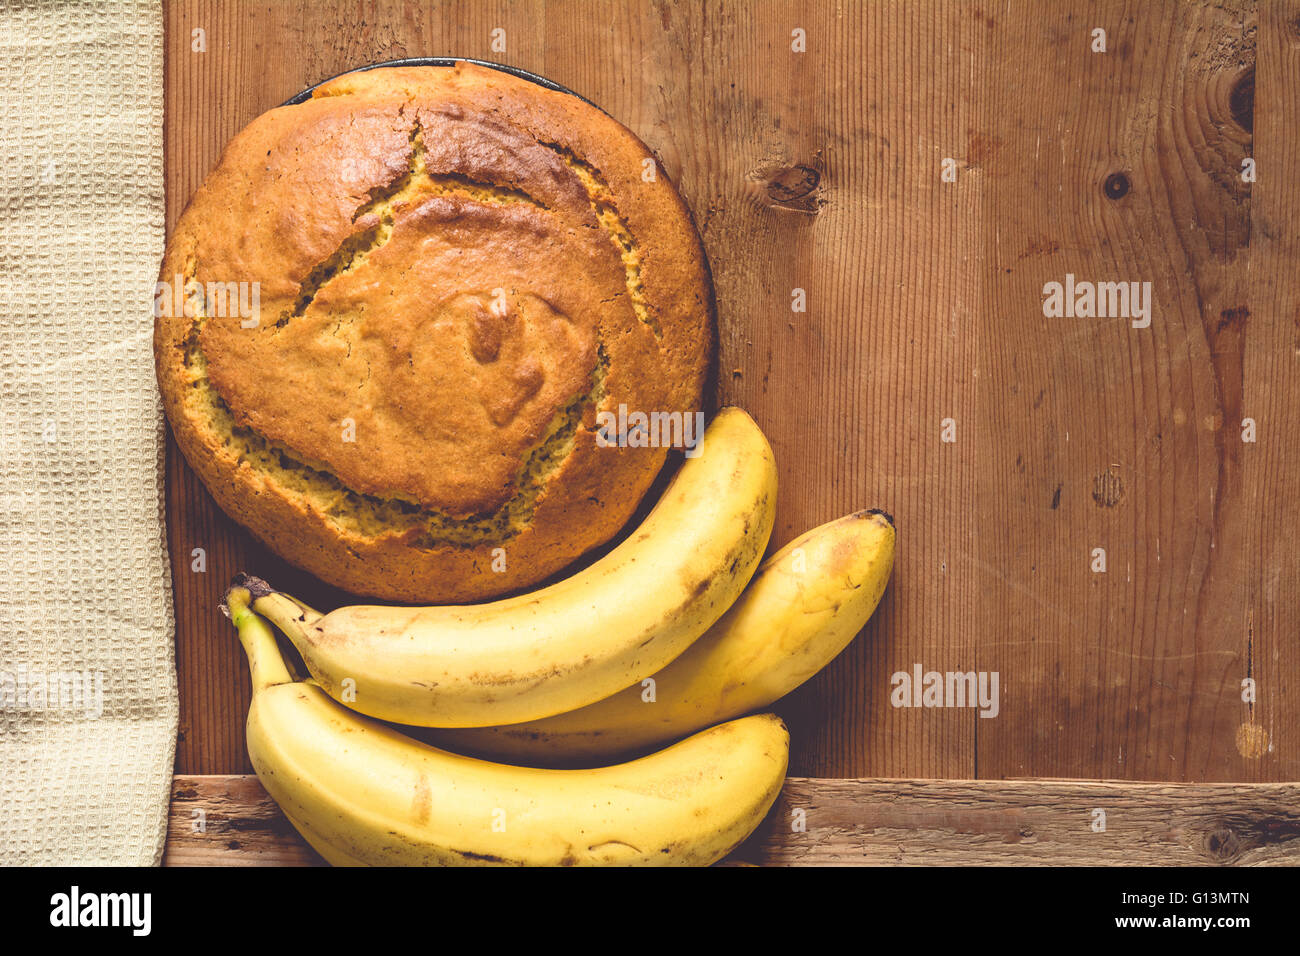 Homemade banana bread with chocolate and peanuts on wooden background, top view - Stock Image